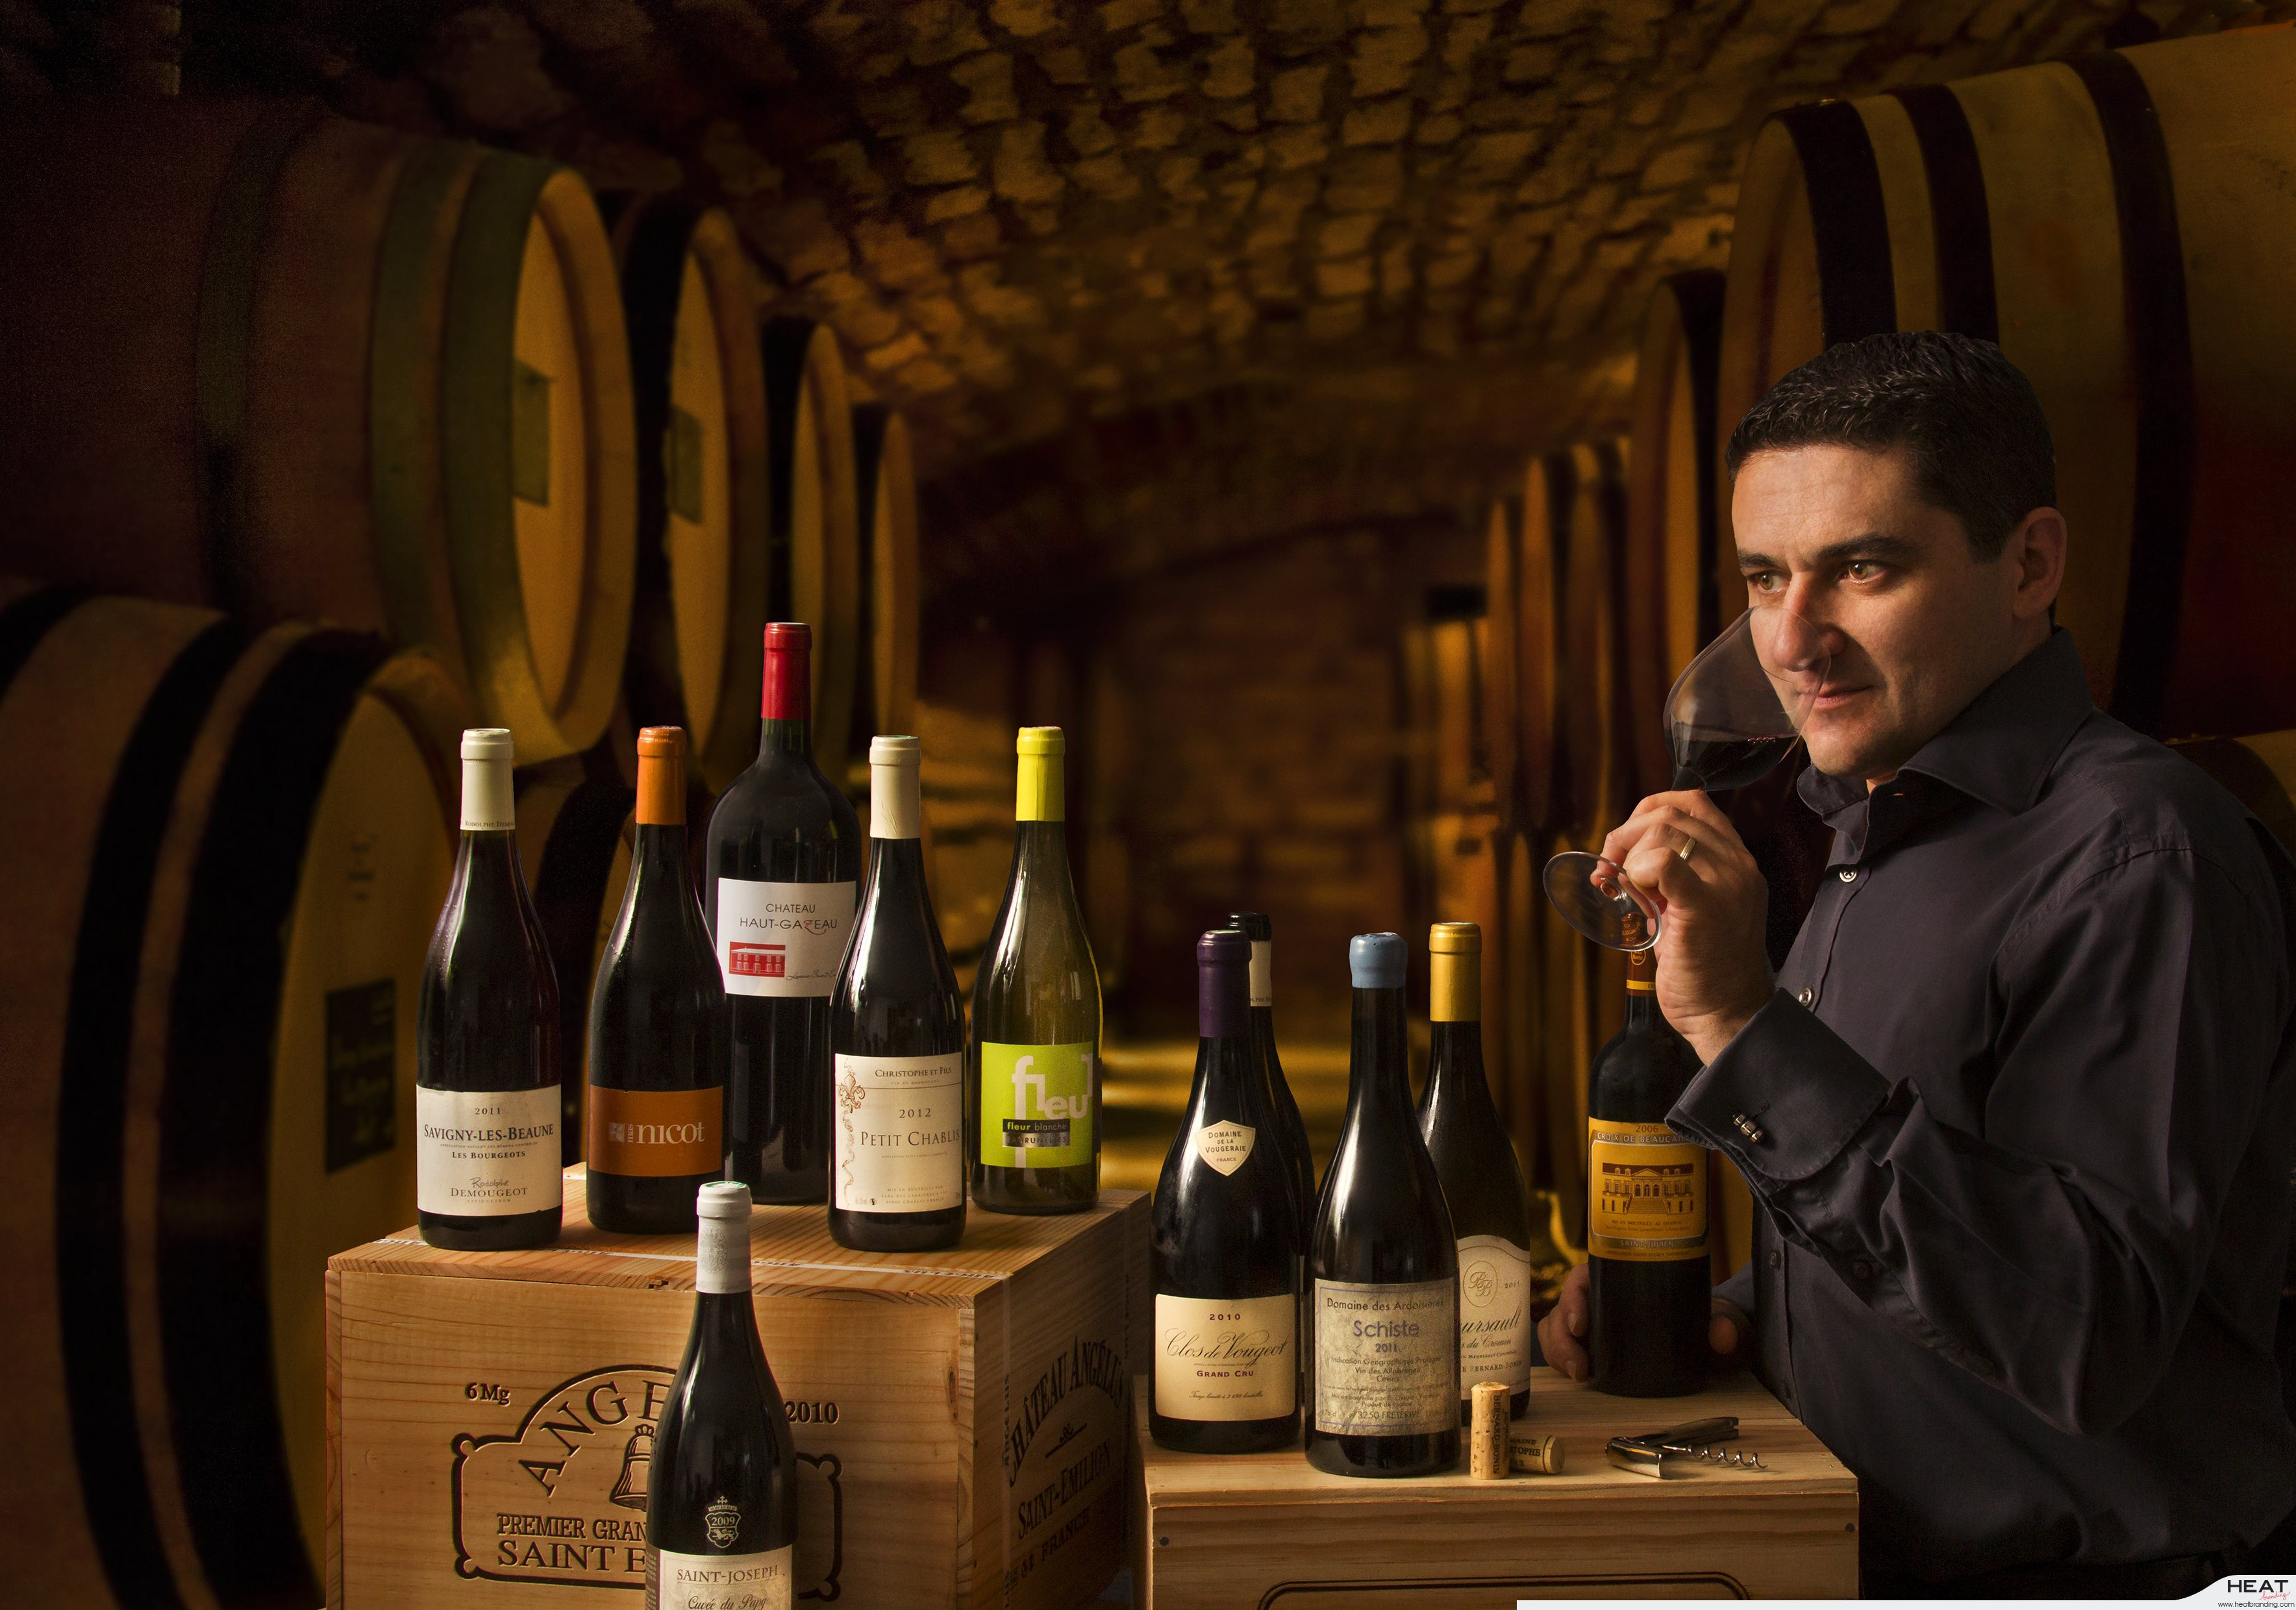 French Wine cellar - The subscription economy